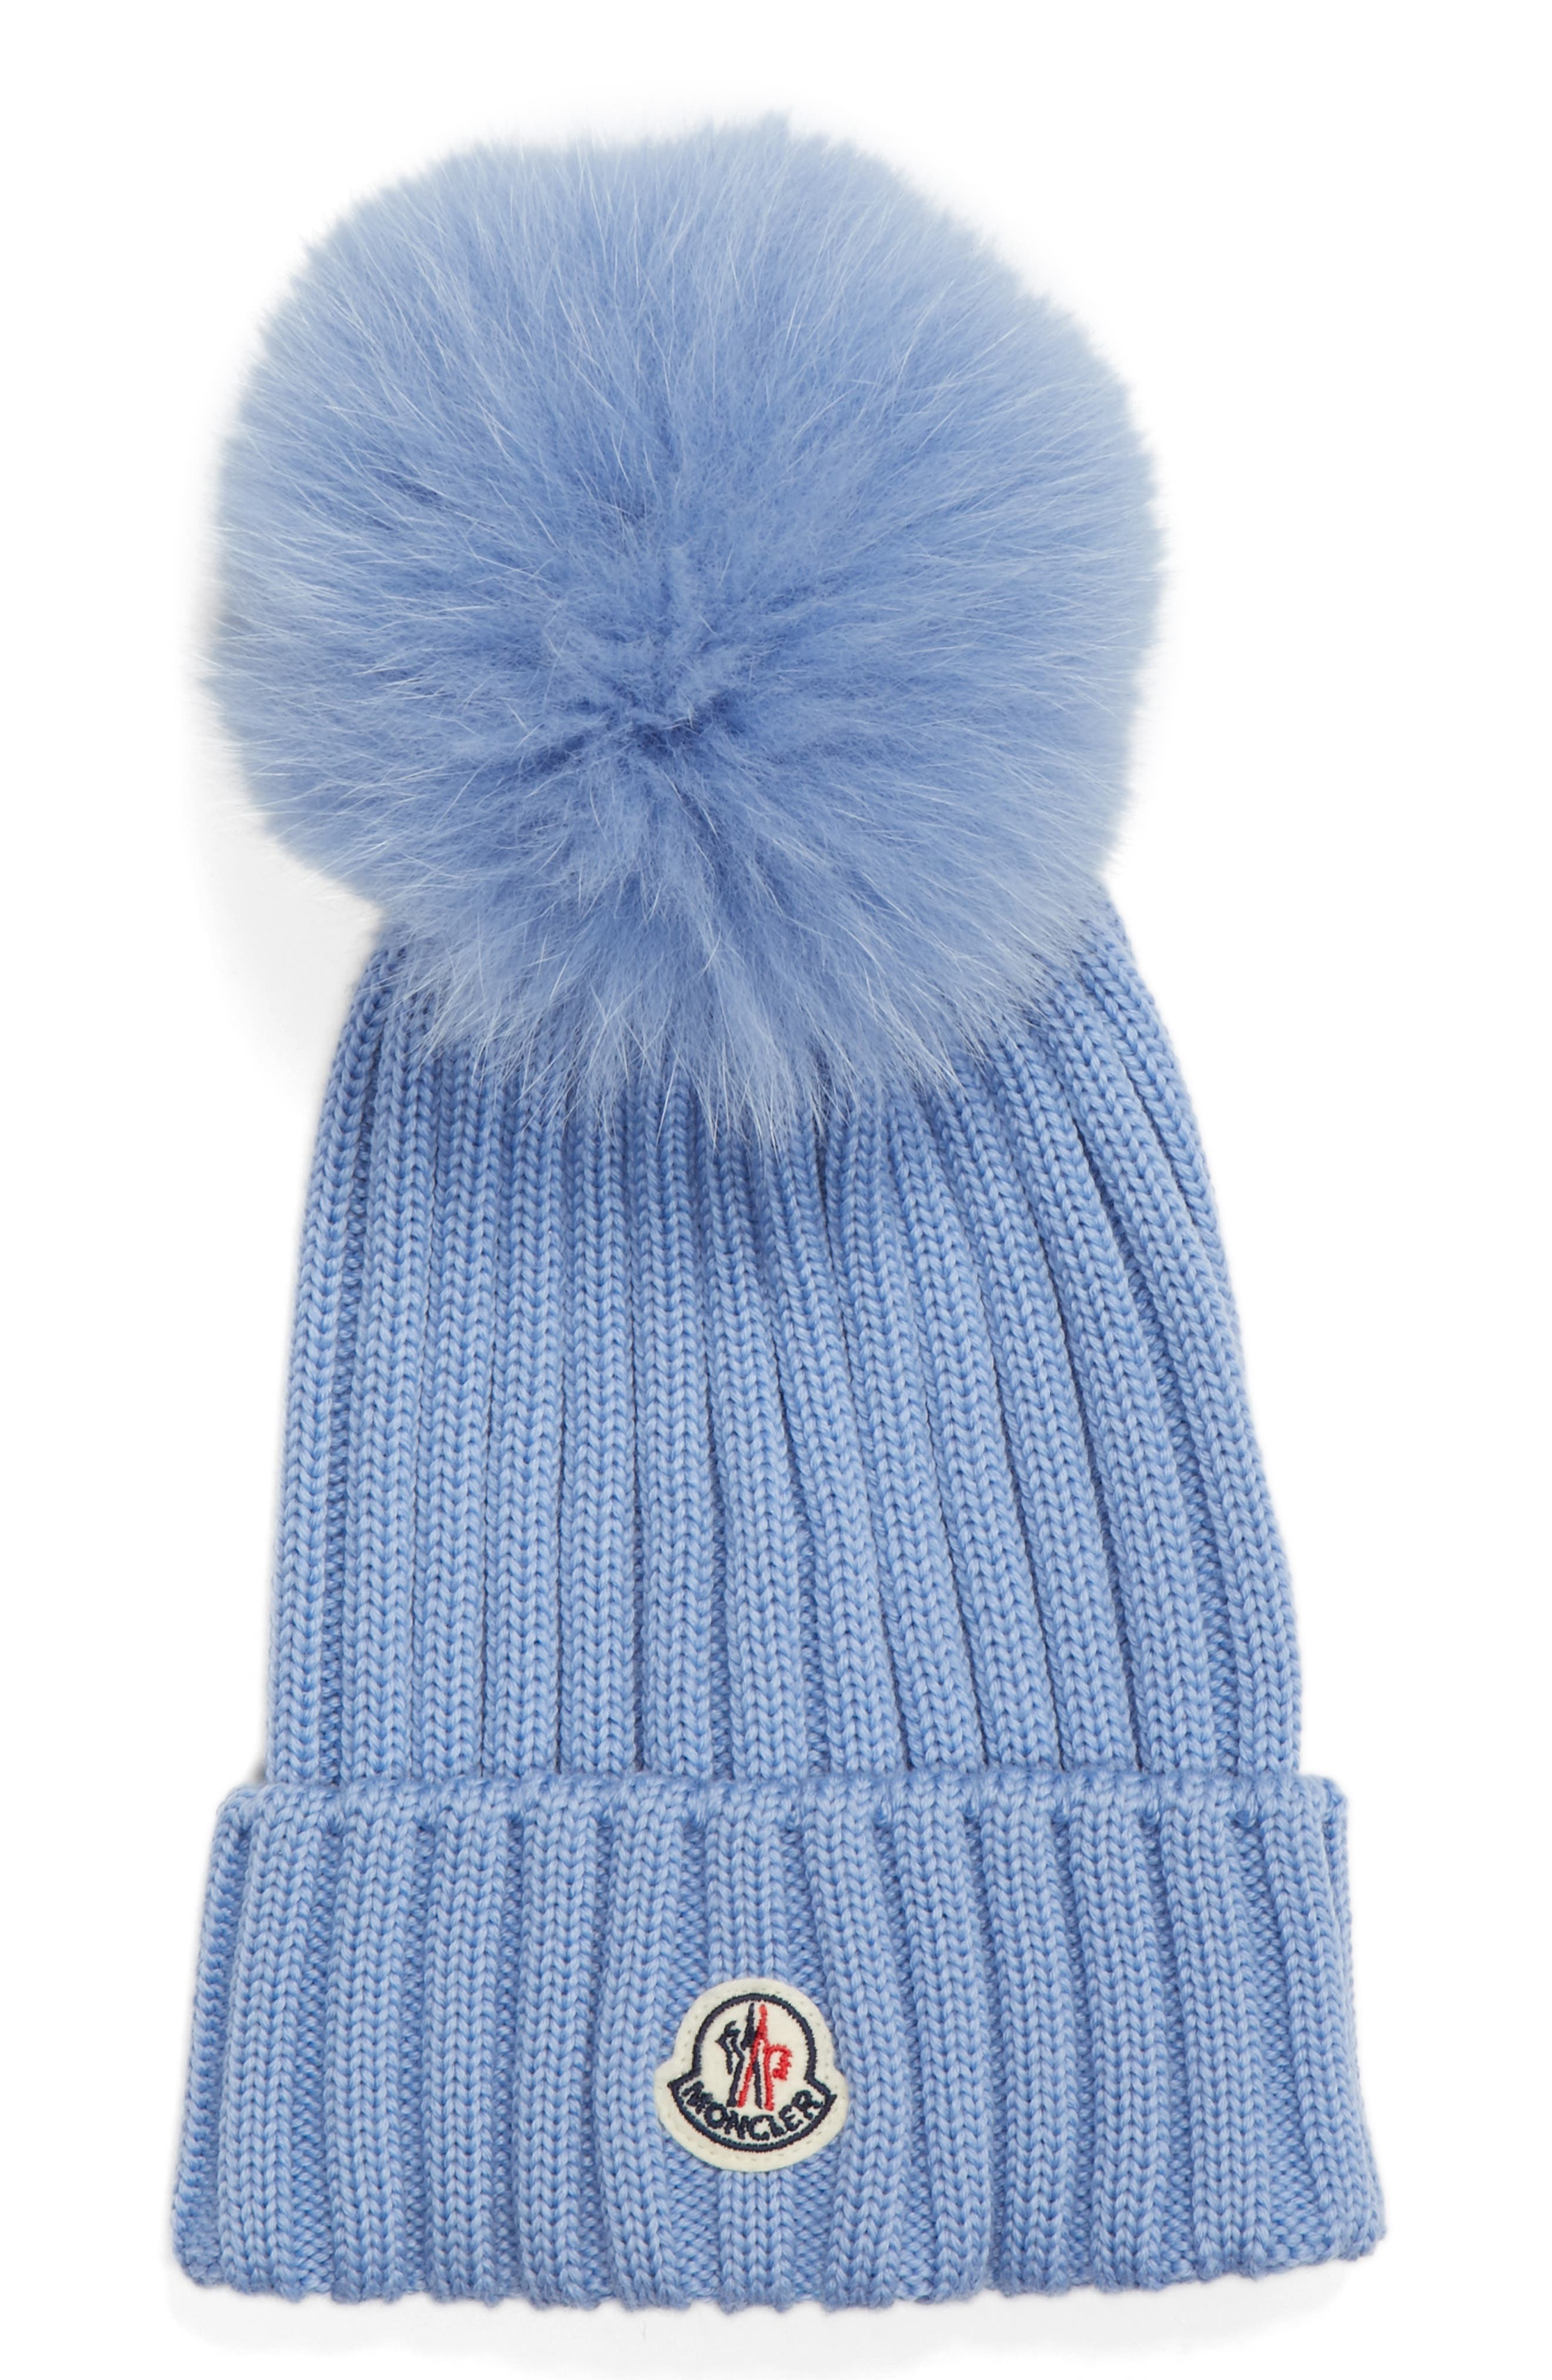 MONCLER, Genuine Fox Fur Pom Wool Beanie, Main thumbnail 1, color, BLUE